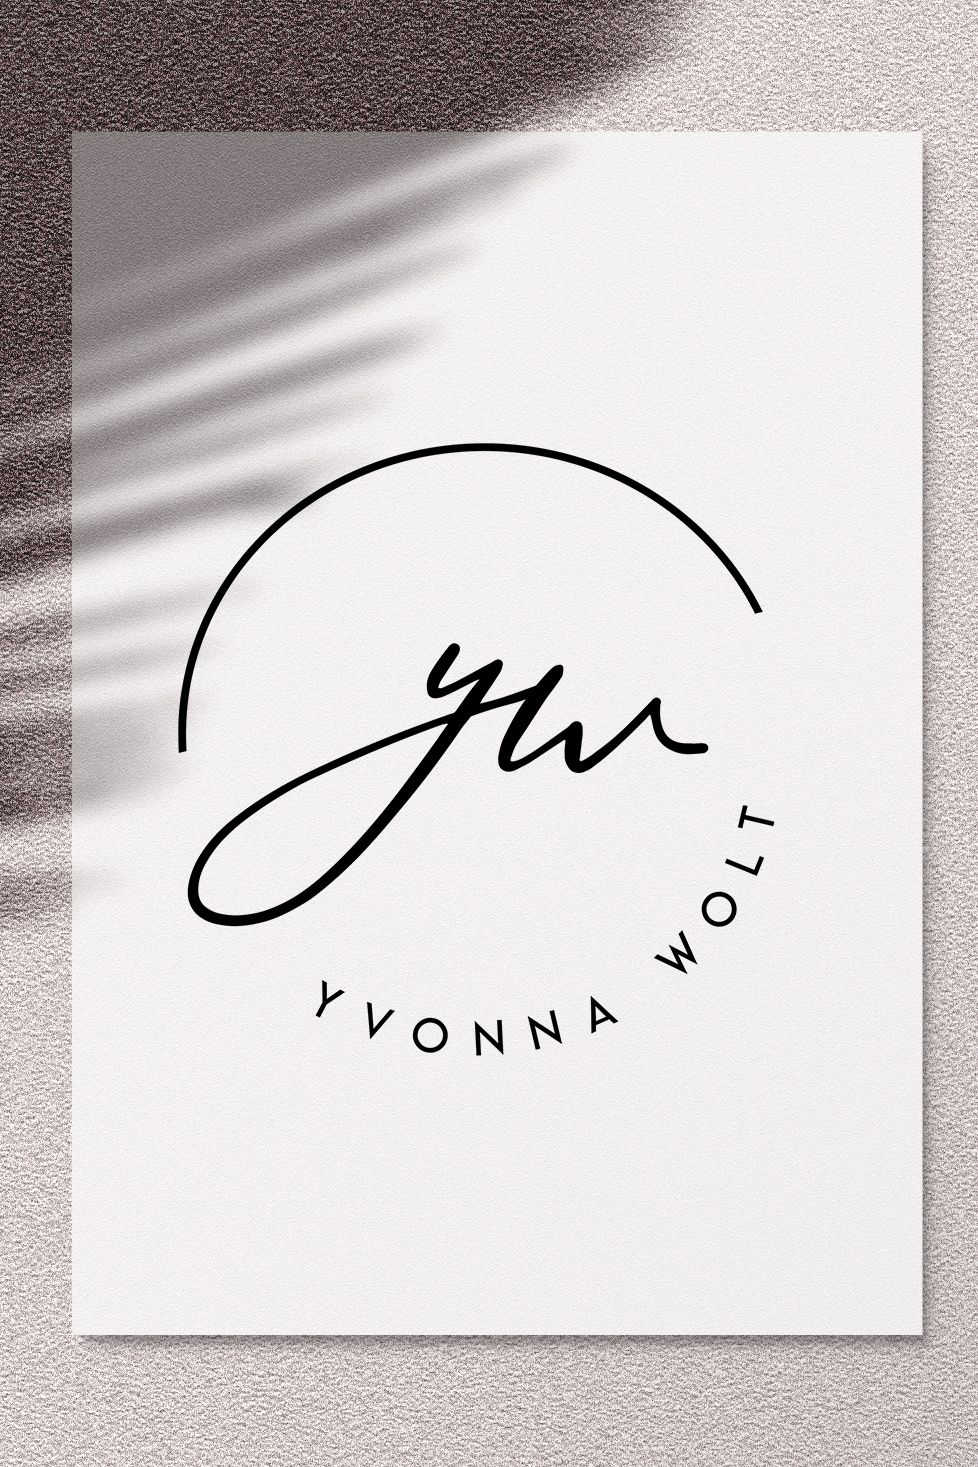 Photo of Signature Logo, Initials Logo Design, Blogger Logo, Submark Logo, Simple Logo Design